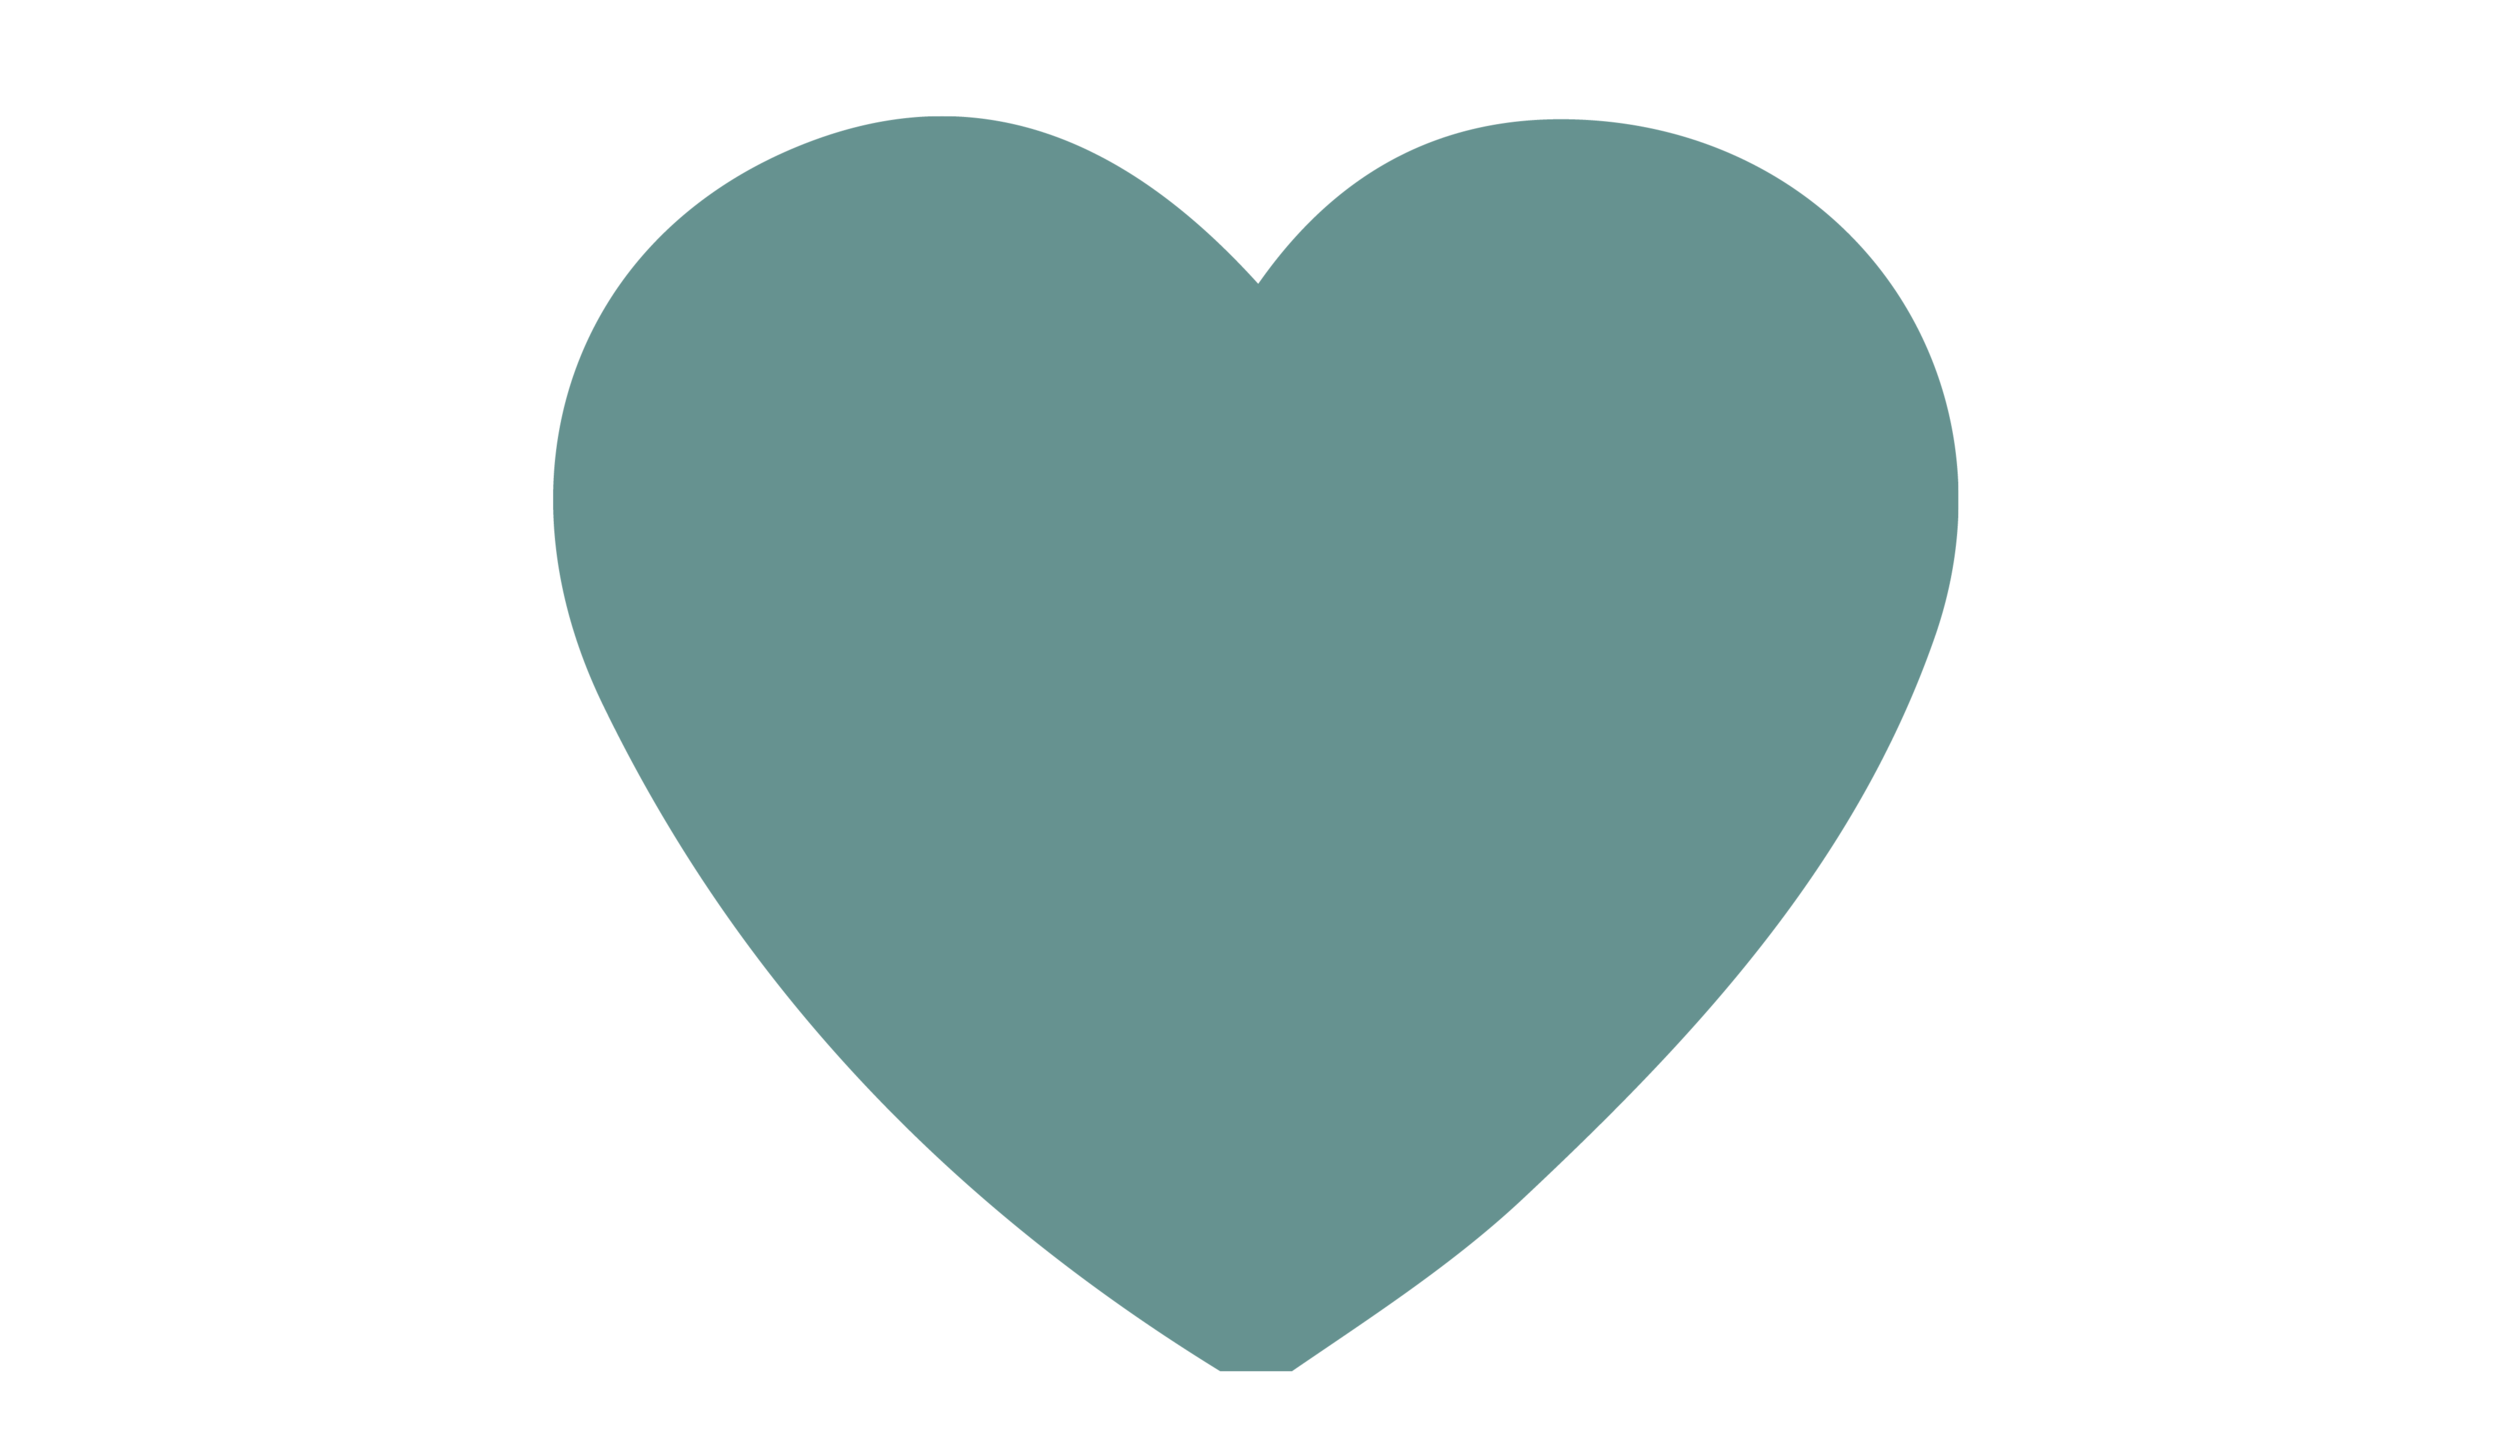 graphic of a heart shape